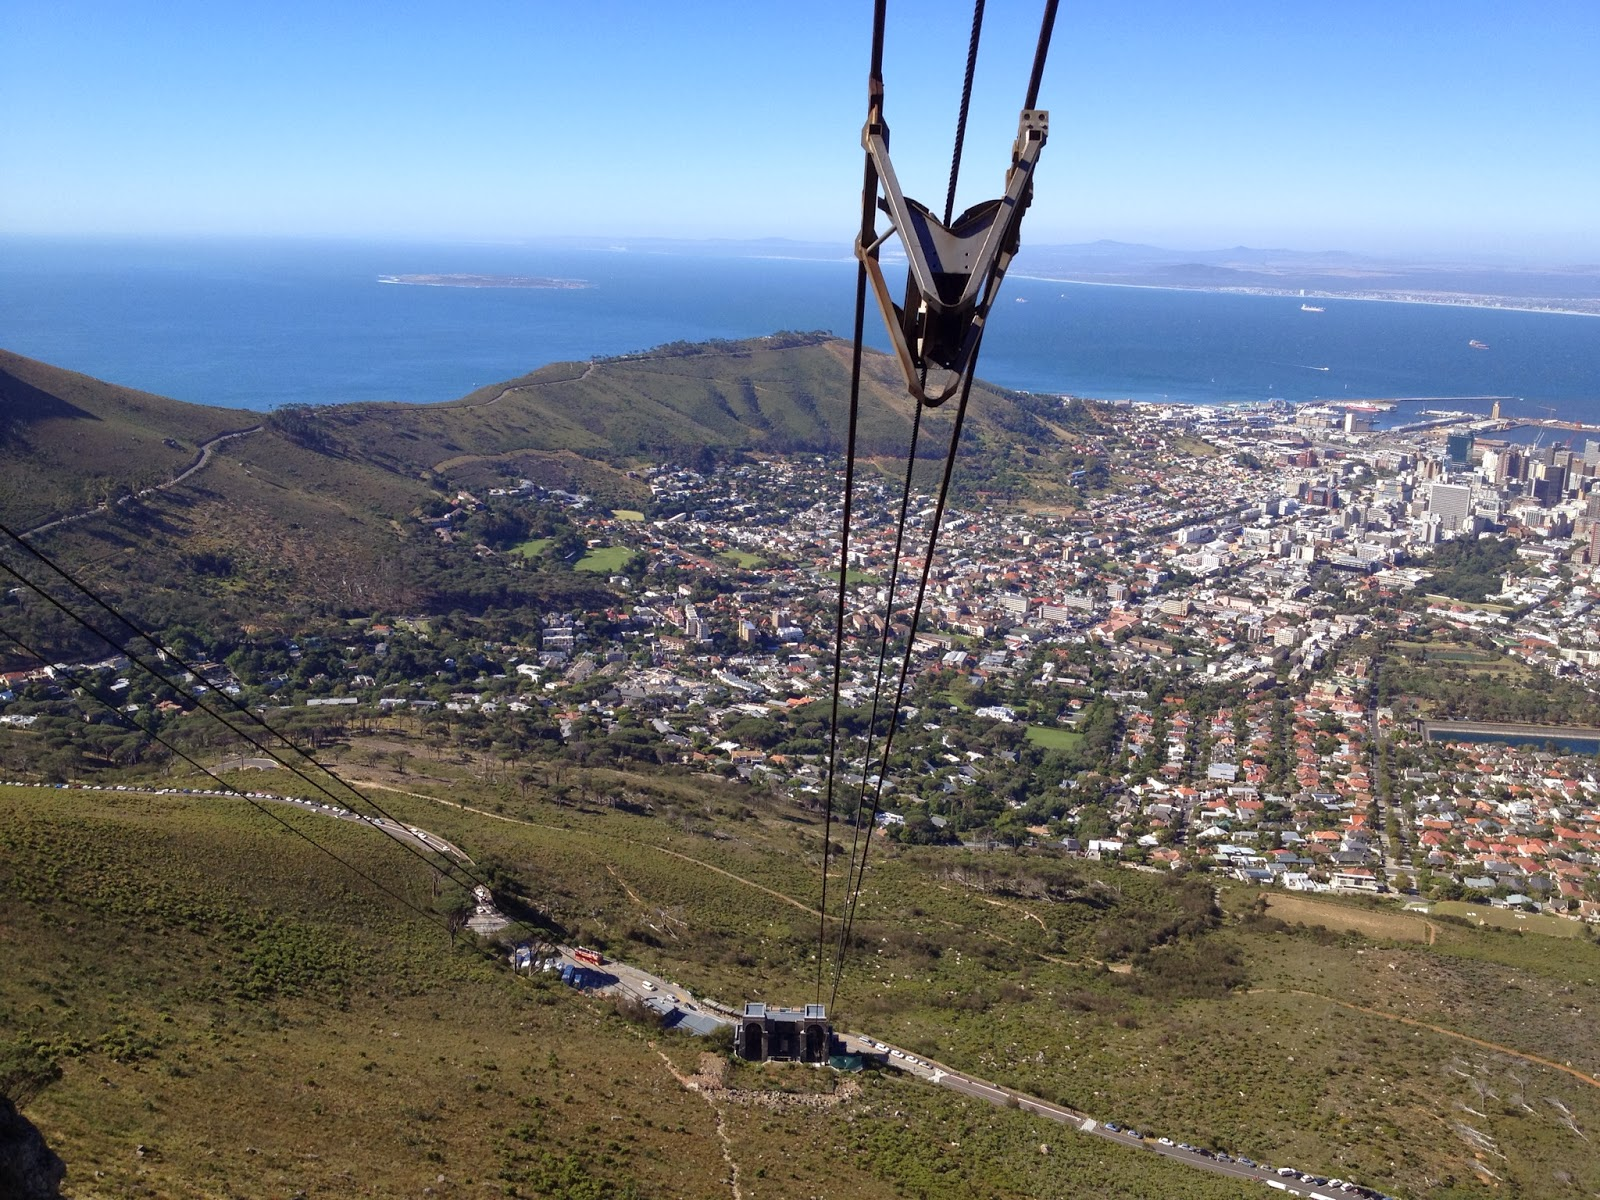 Cape Town - View from the gondola heading up to Table Mountain